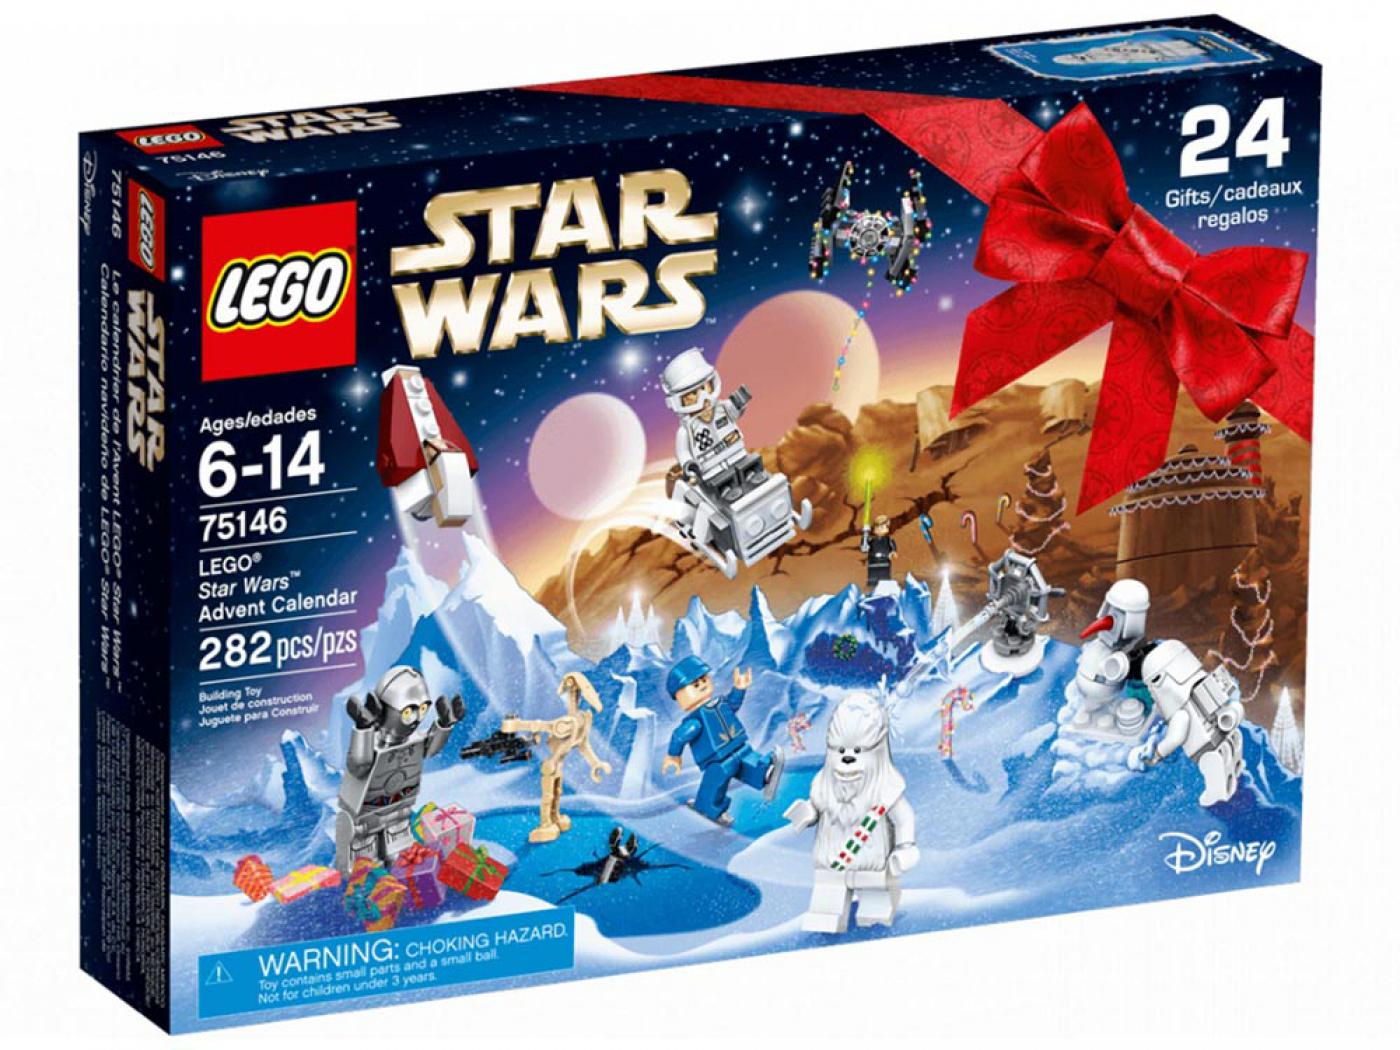 LEGO Star Wars II: The Original Trilogy is a video game released by LucasArts on September 12, , based on the Star Wars-themed toy line by the LEGO Group, and the sequel to the highly successful LEGO Star Wars: The Video Game. The game was released concurrently with the highly-anticipated.